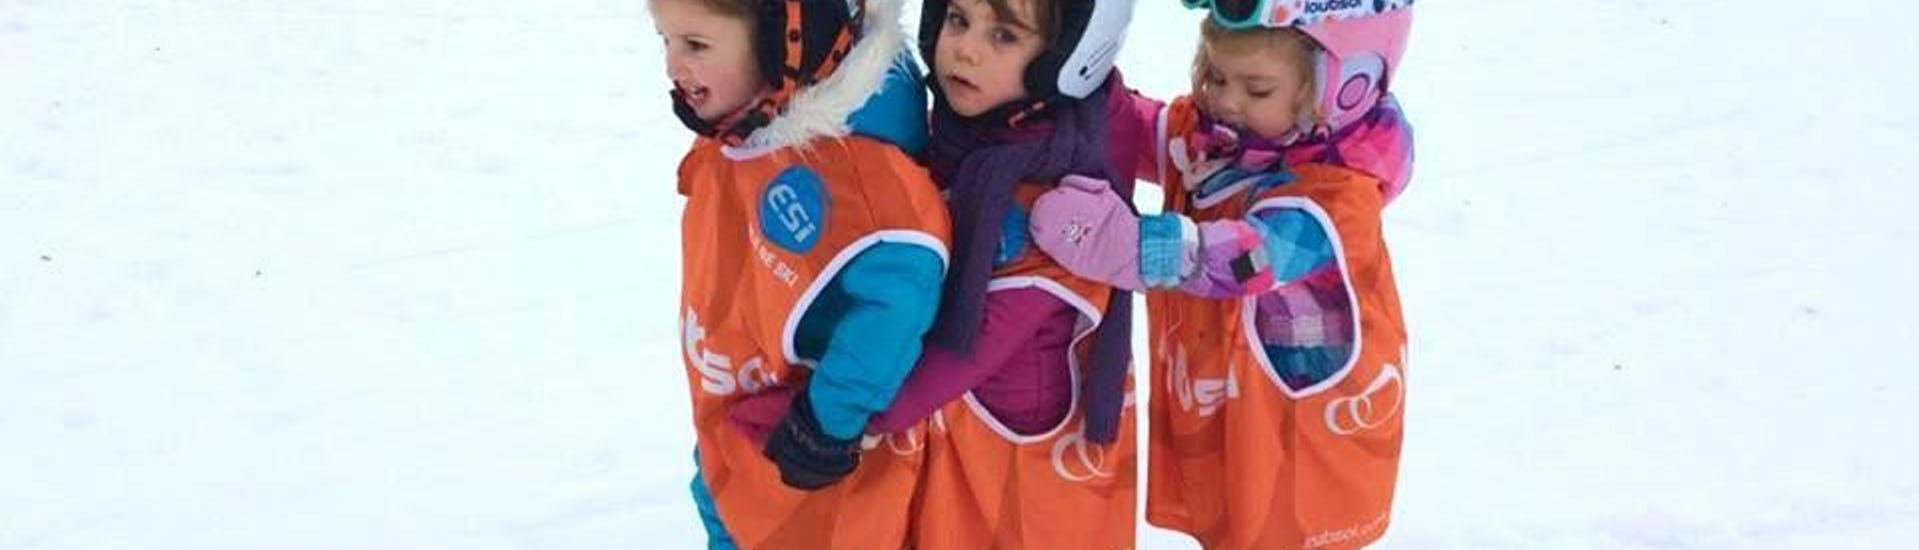 Ski Lessons for Kids (3-5 years)